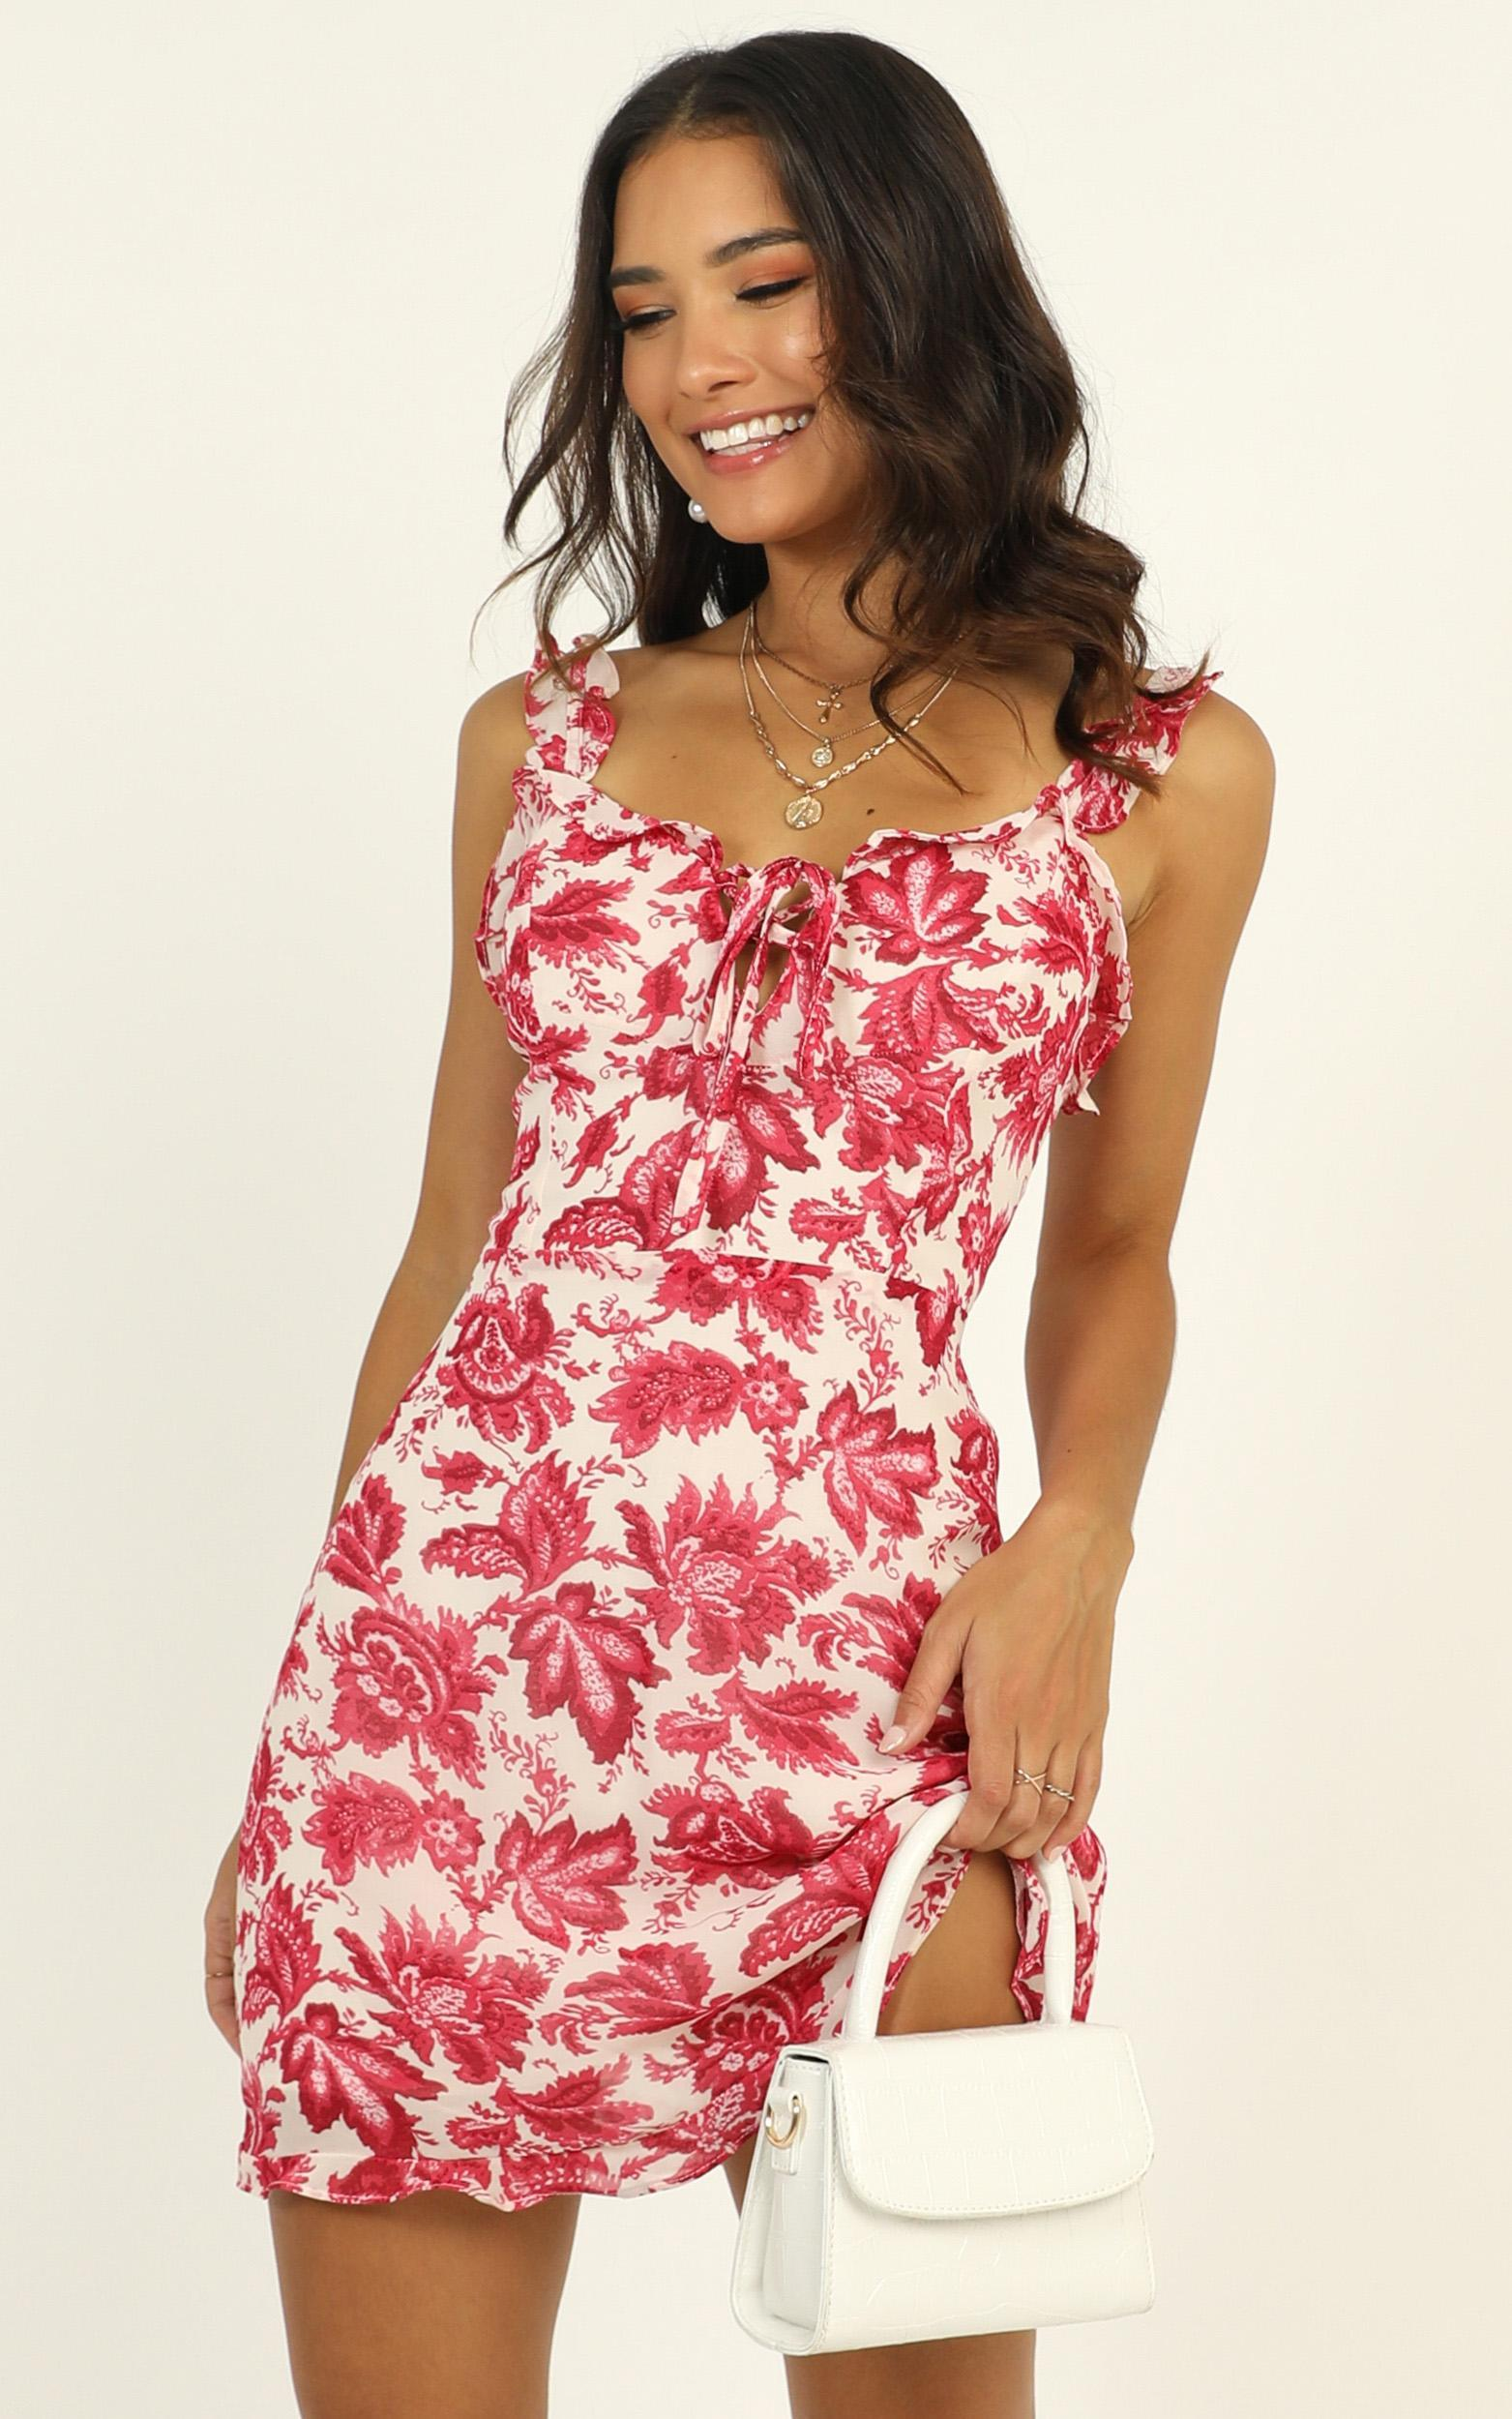 Brunch Babe Ruffle Mini Dress in pink floral - 12 (L), Pink, hi-res image number null